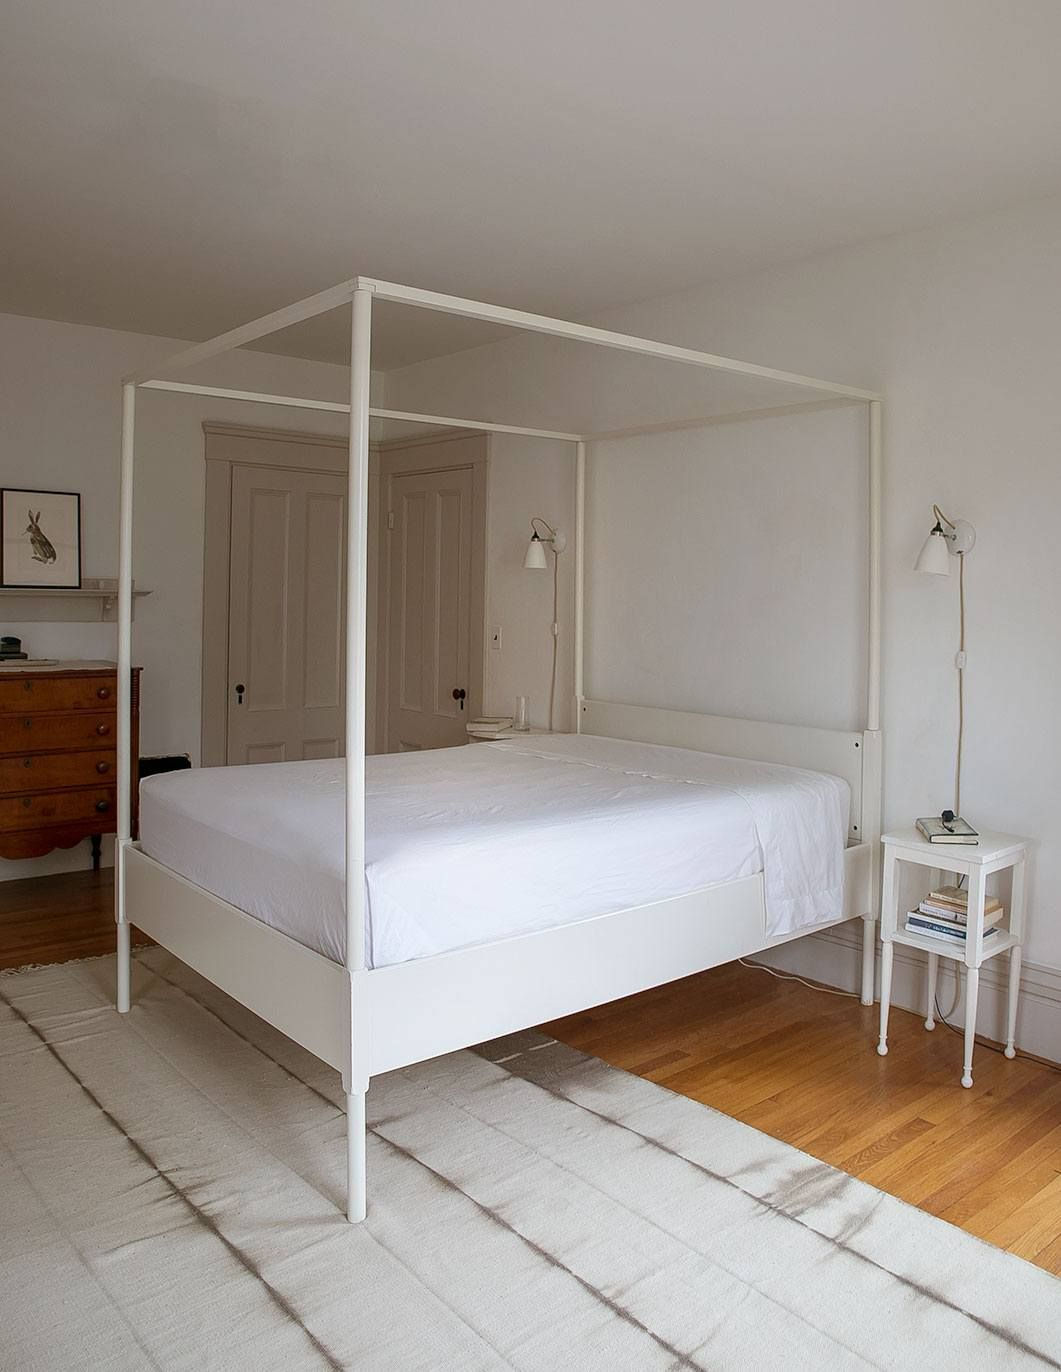 Expert Advice Proper BedMaking 101, How to Make Square